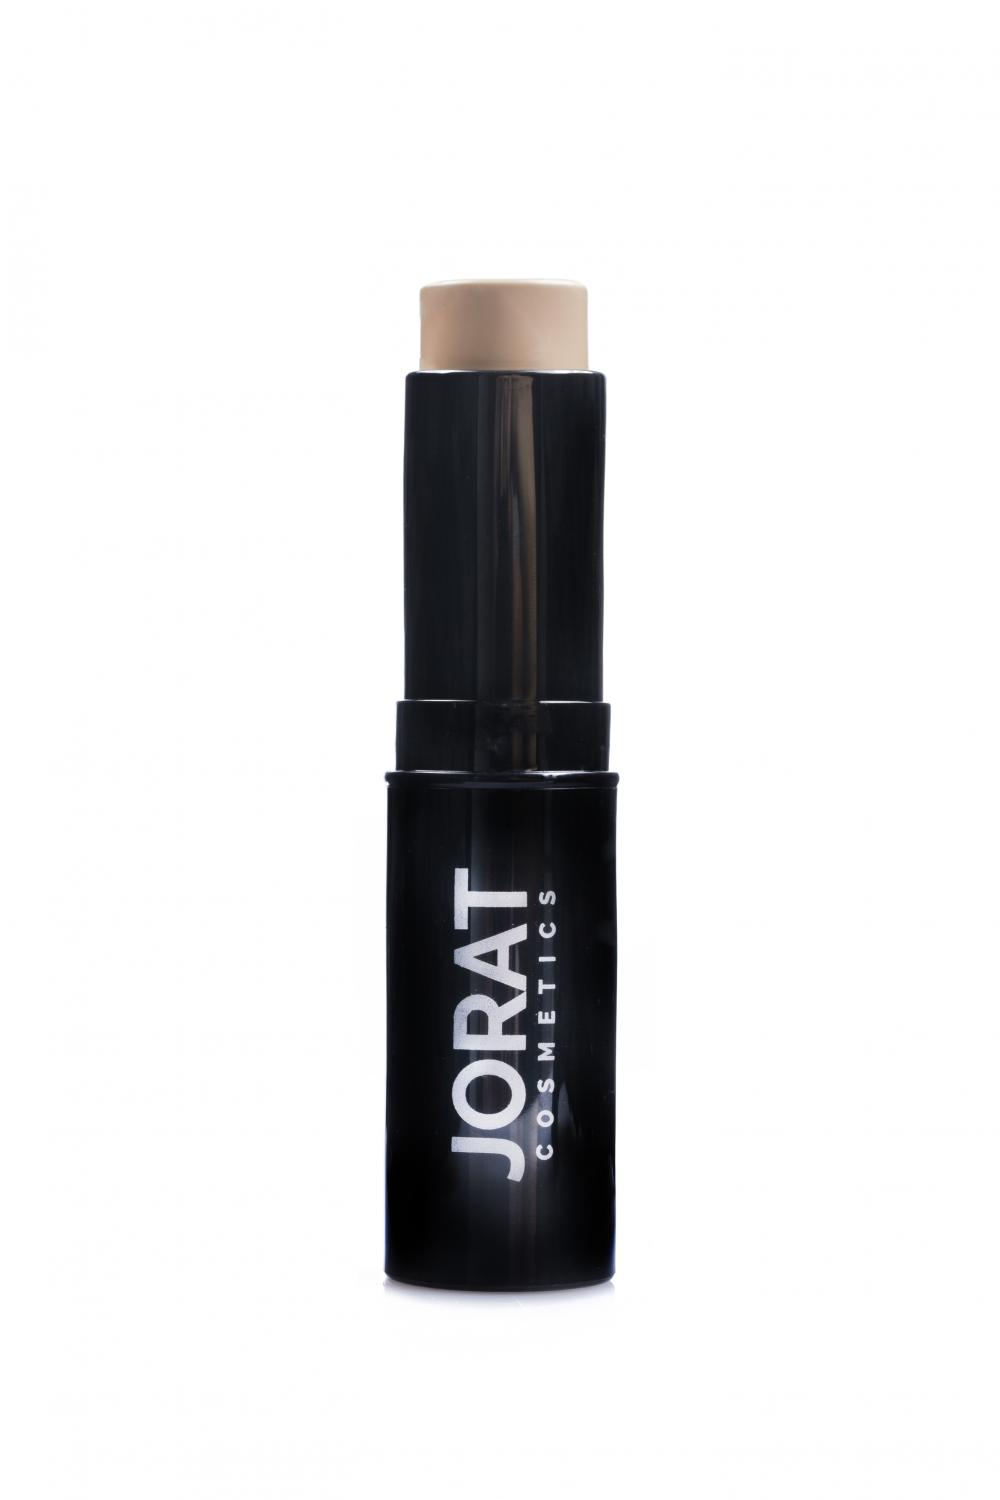 Jorat Cosmetics Beauty Stick